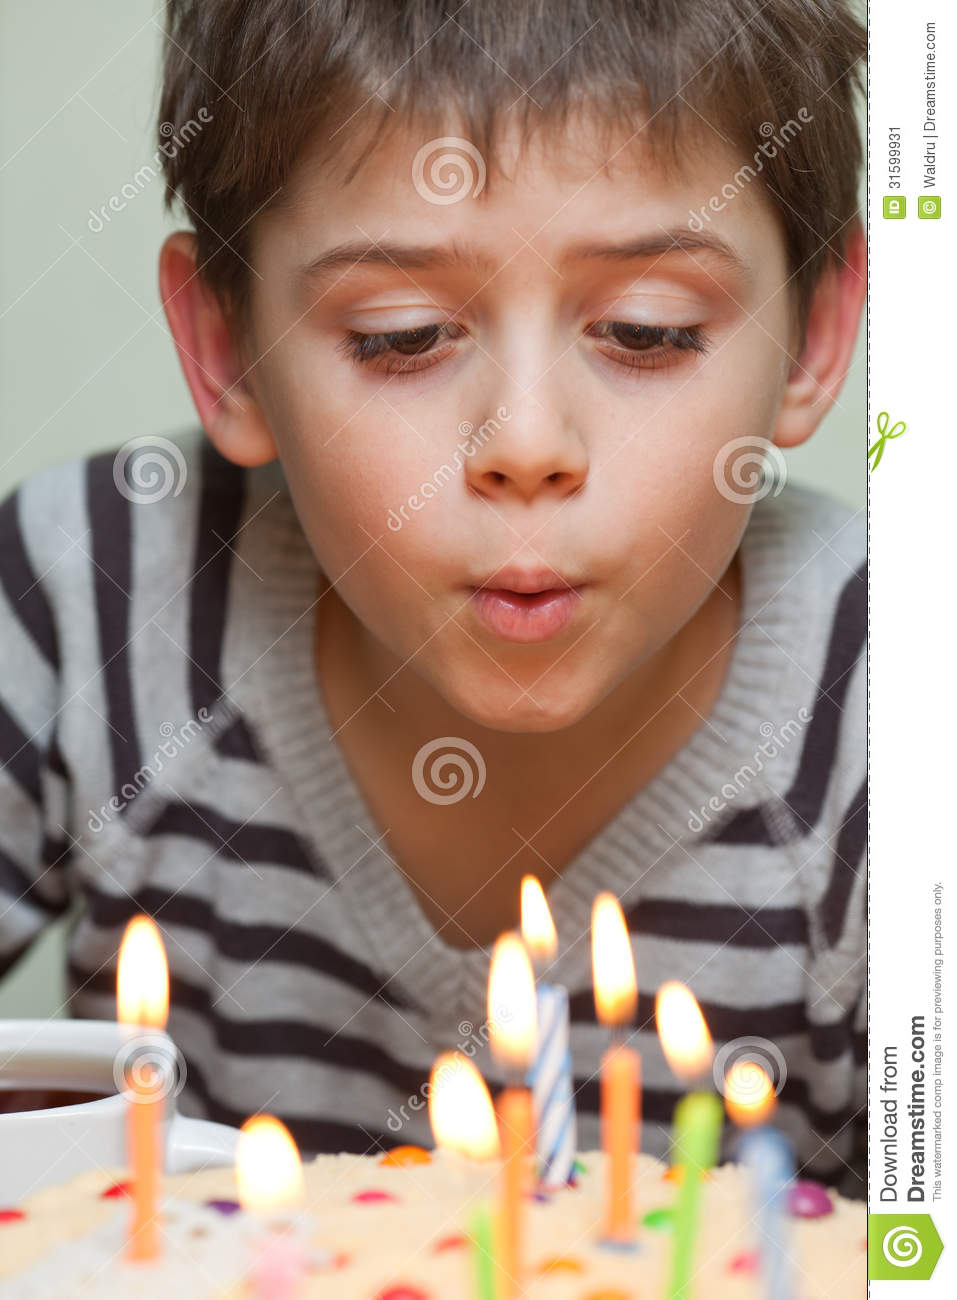 Stupendous Cute Boy At Birthday Cake Stock Image Image Of Image 31599931 Birthday Cards Printable Nowaargucafe Filternl